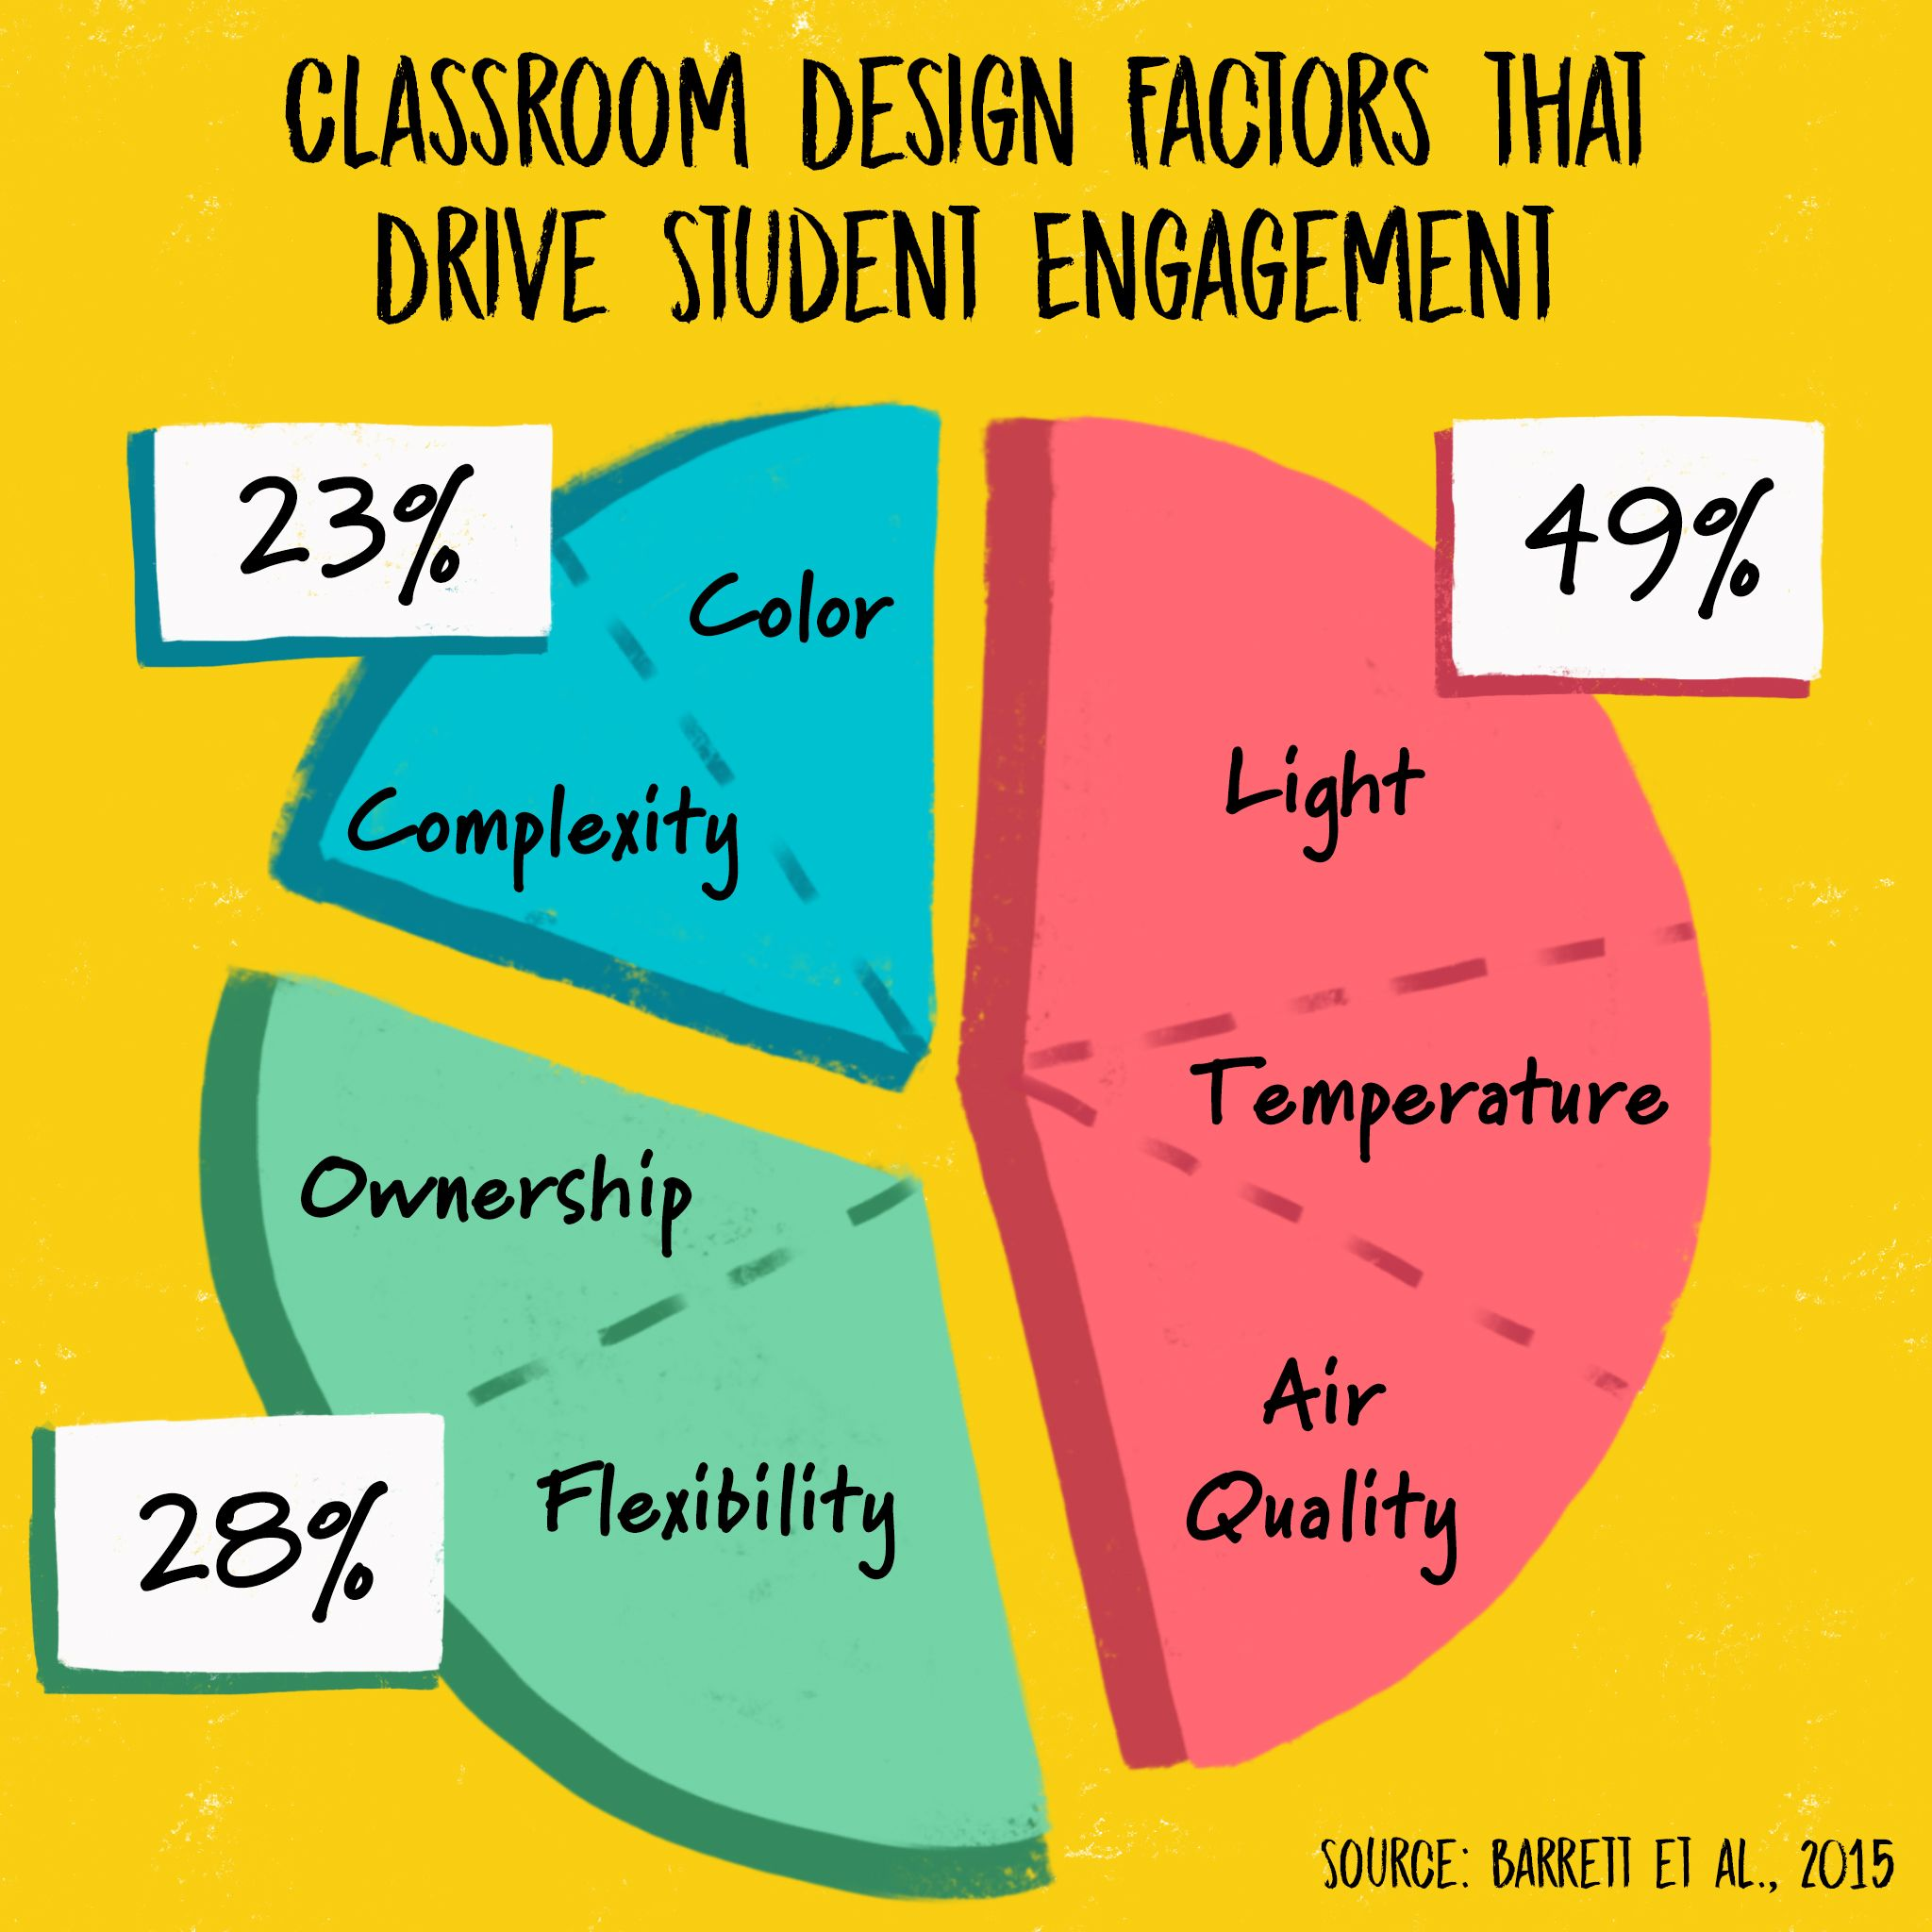 Personalization factors like flexibility and student ownership account for over a quarter of the academic improvement attributed to classroom design.